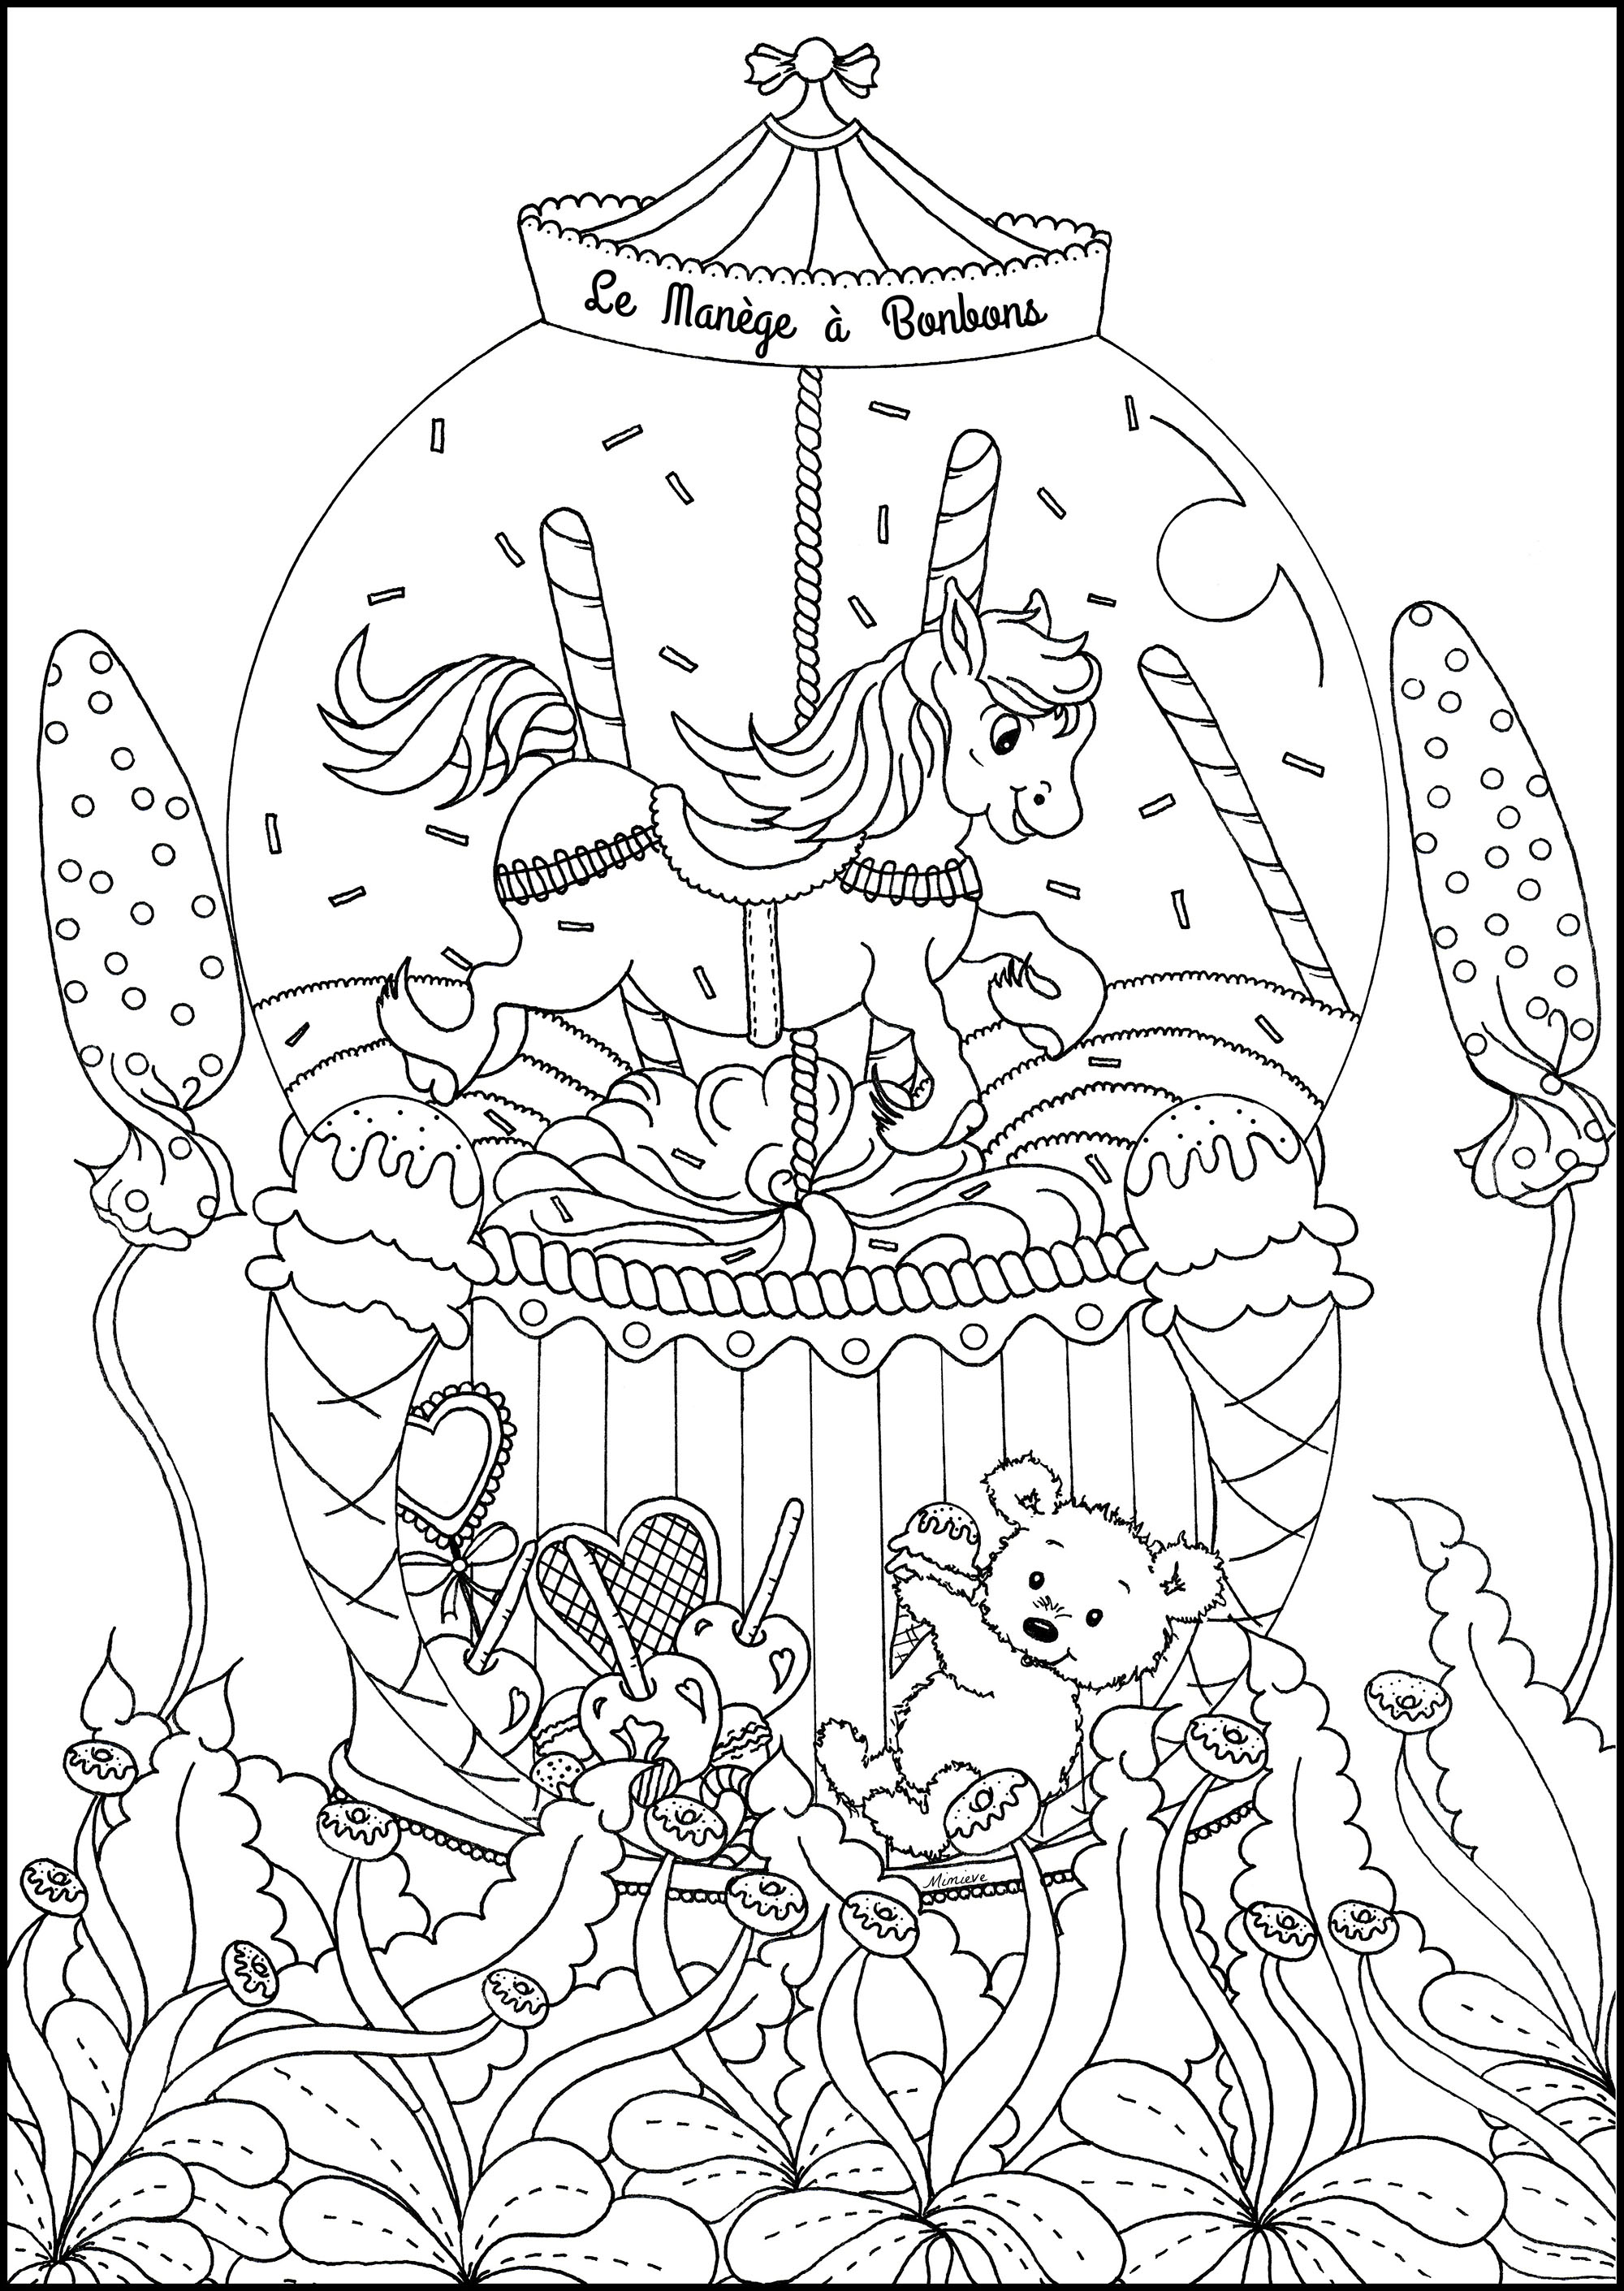 The Candy Carousel Return To Childhood Adult Coloring Pages